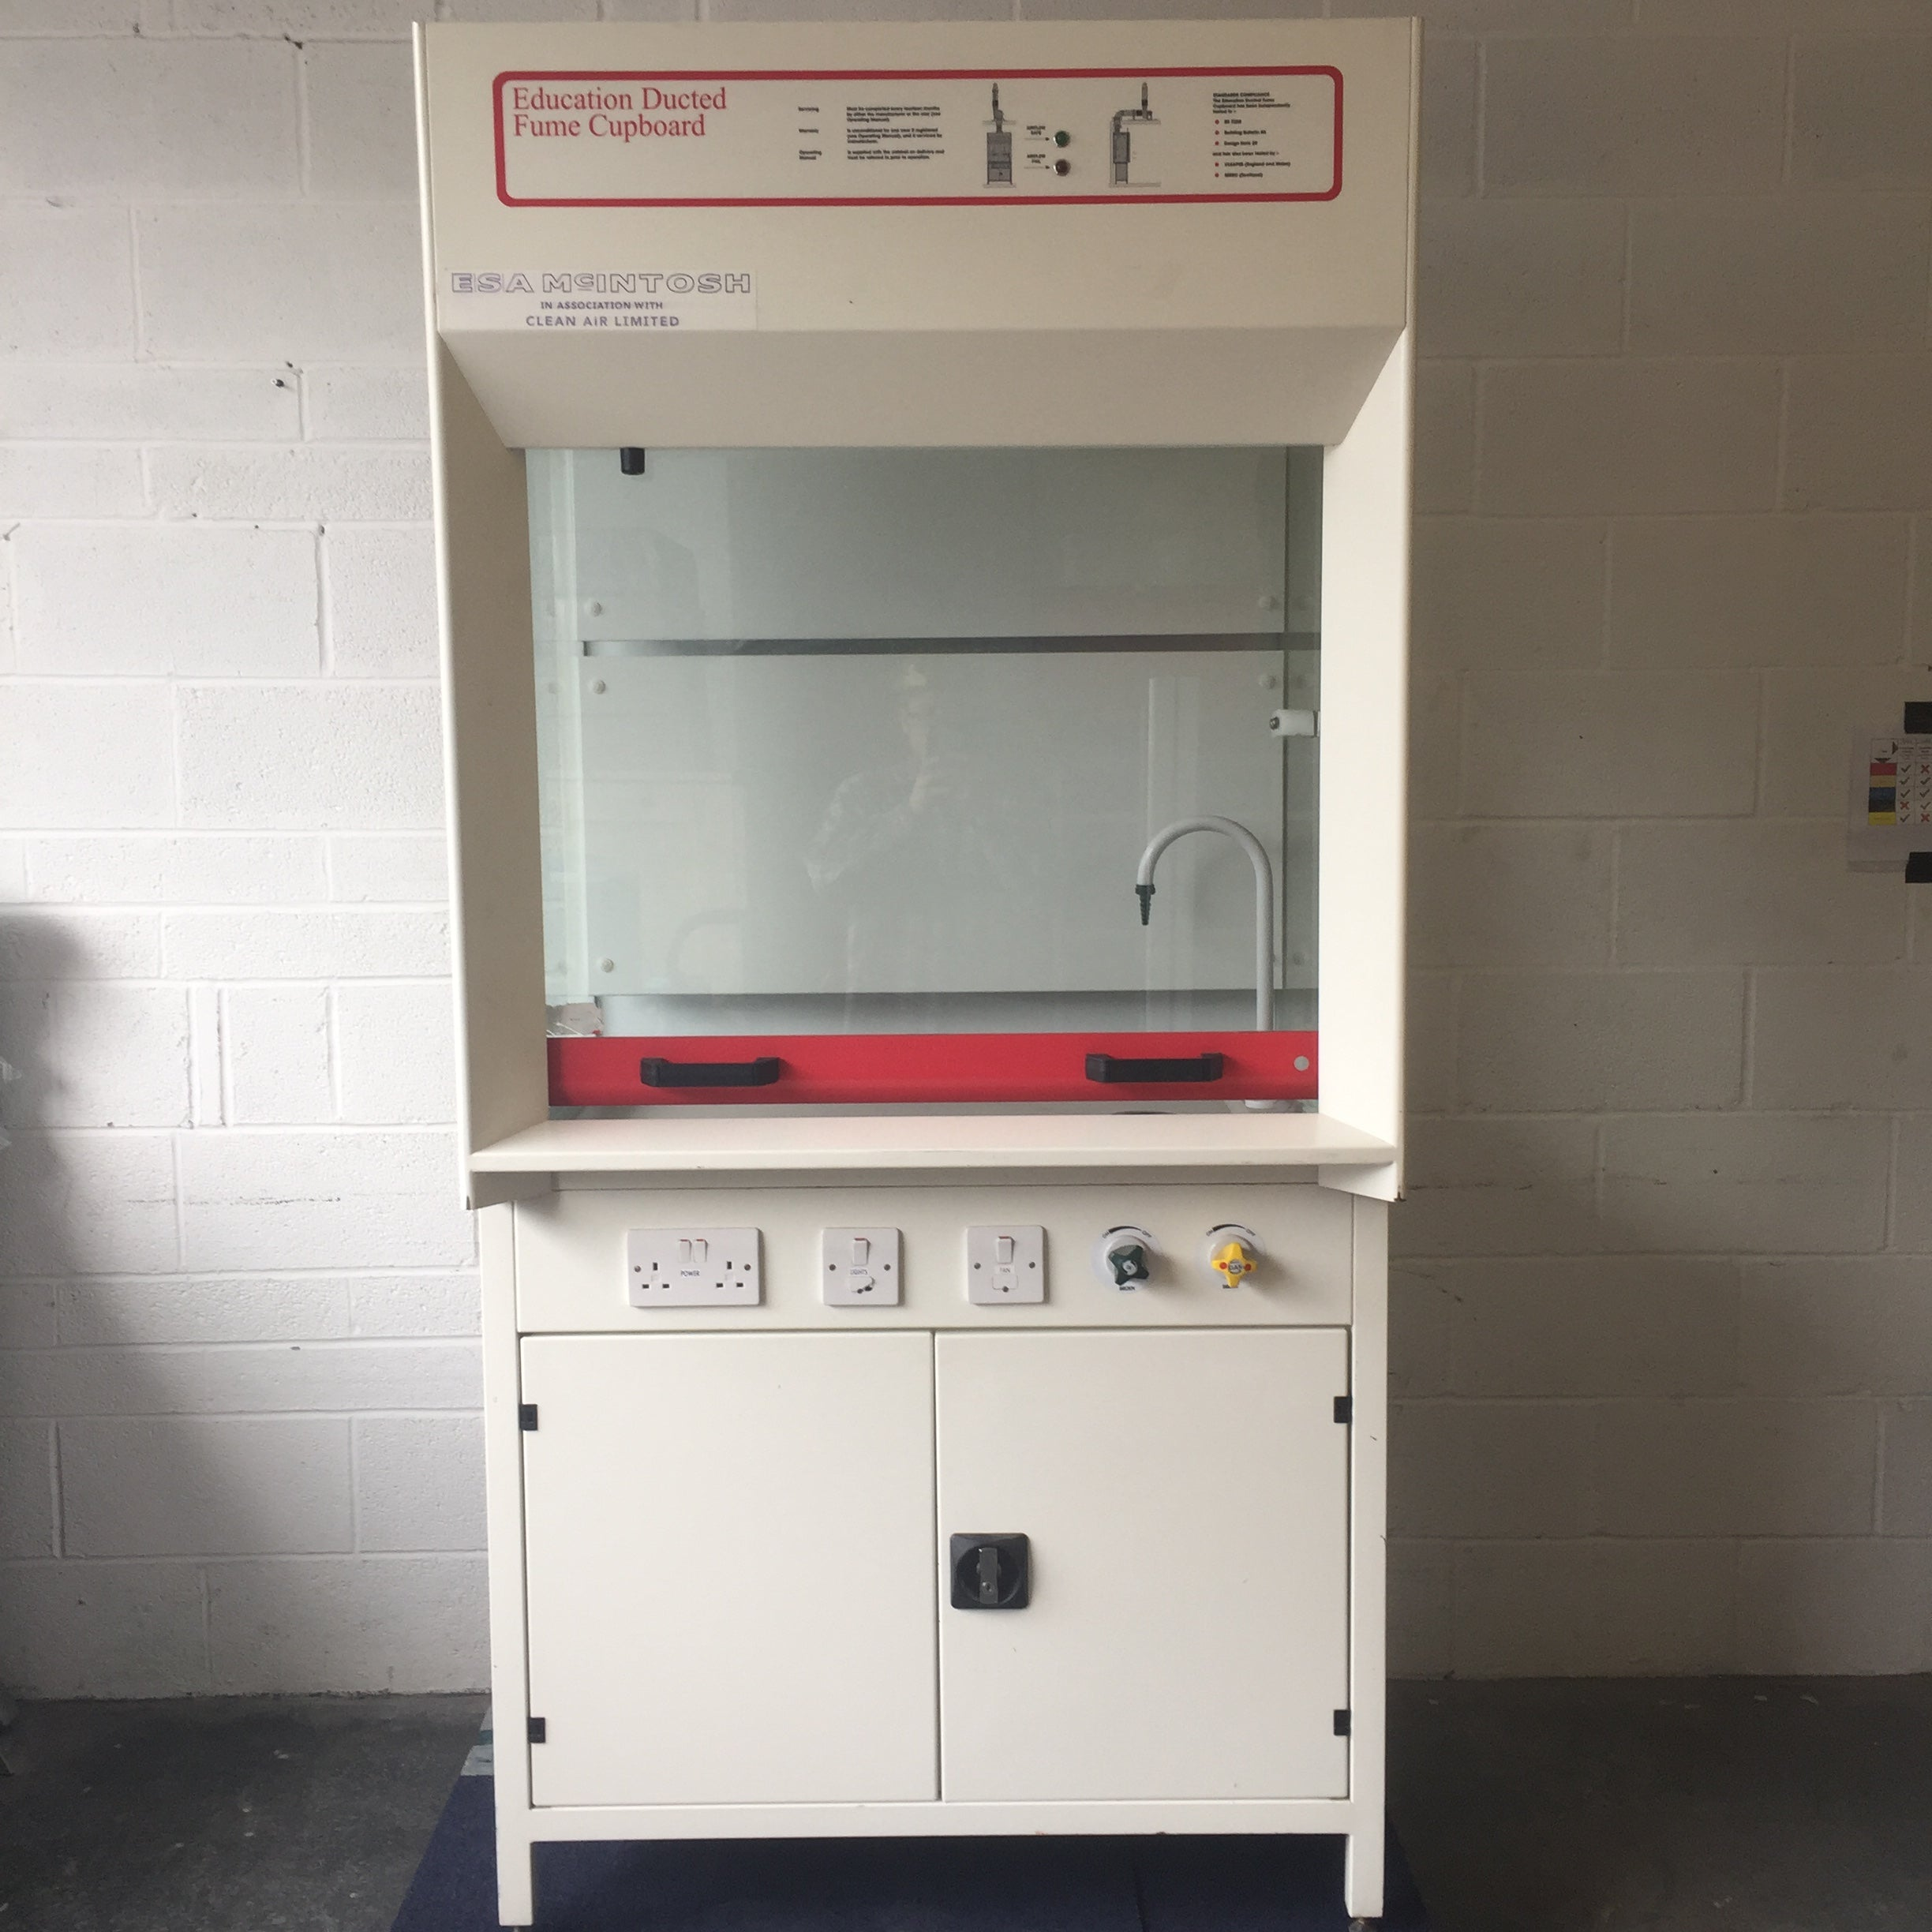 Clean Air Education Ducted Fume Cupboard